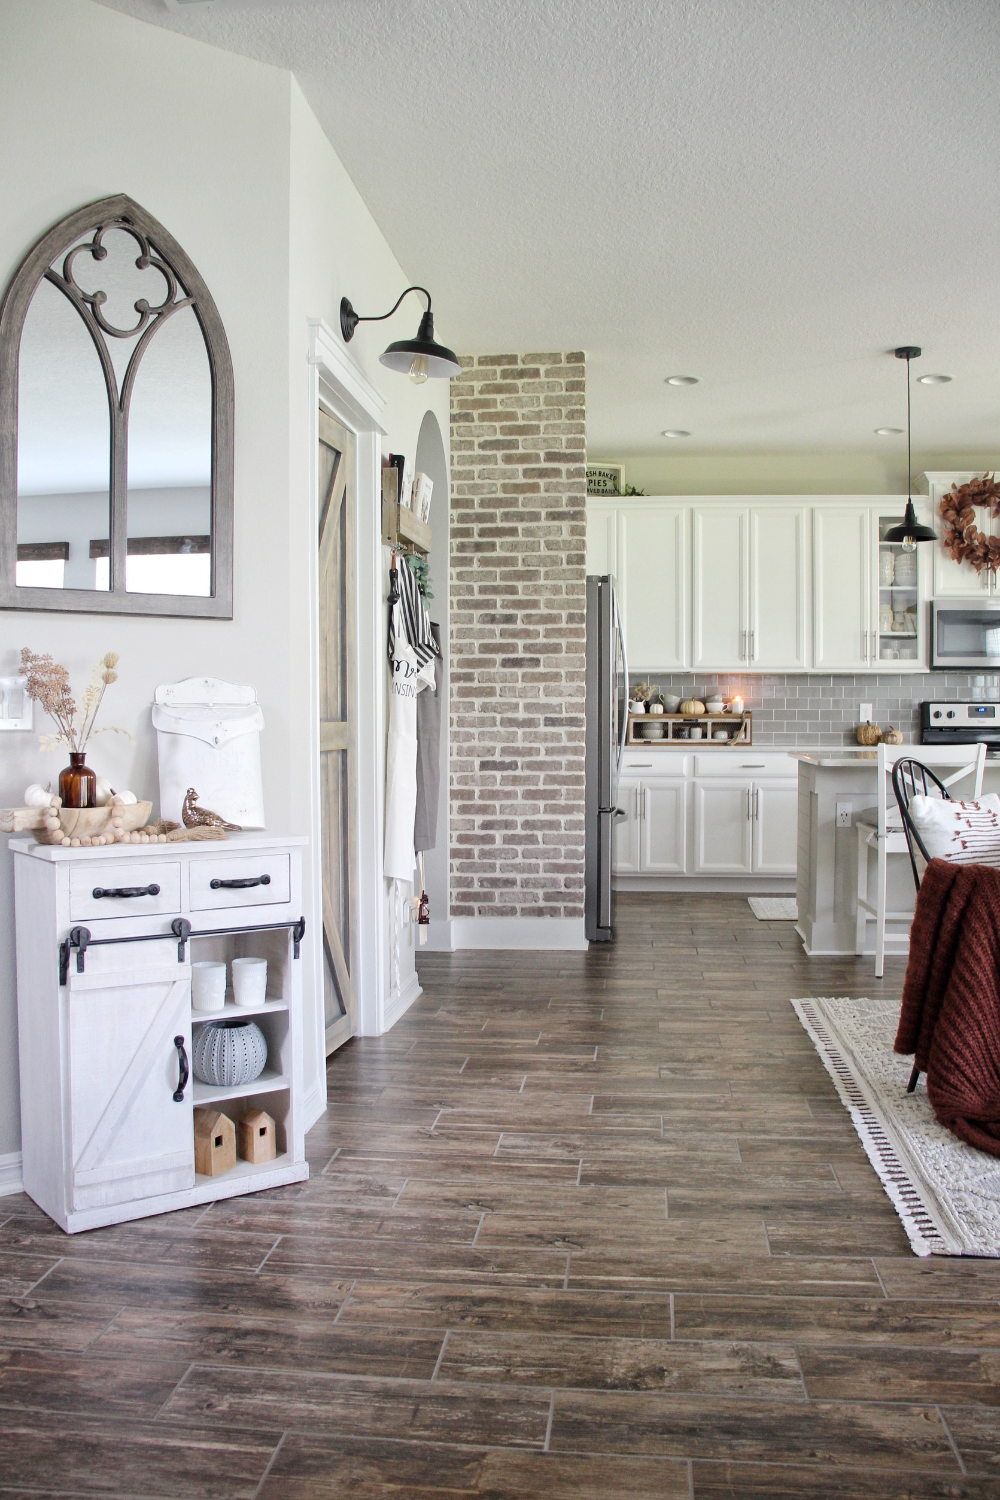 Brickwebb Accent Wall: See How the Newbuild Newlyweds Used Old Mill Brick to Make a Statement in Their Kitchen. | Blogs for Best Home Decor Using Thin Bricks | Old Mill Brick